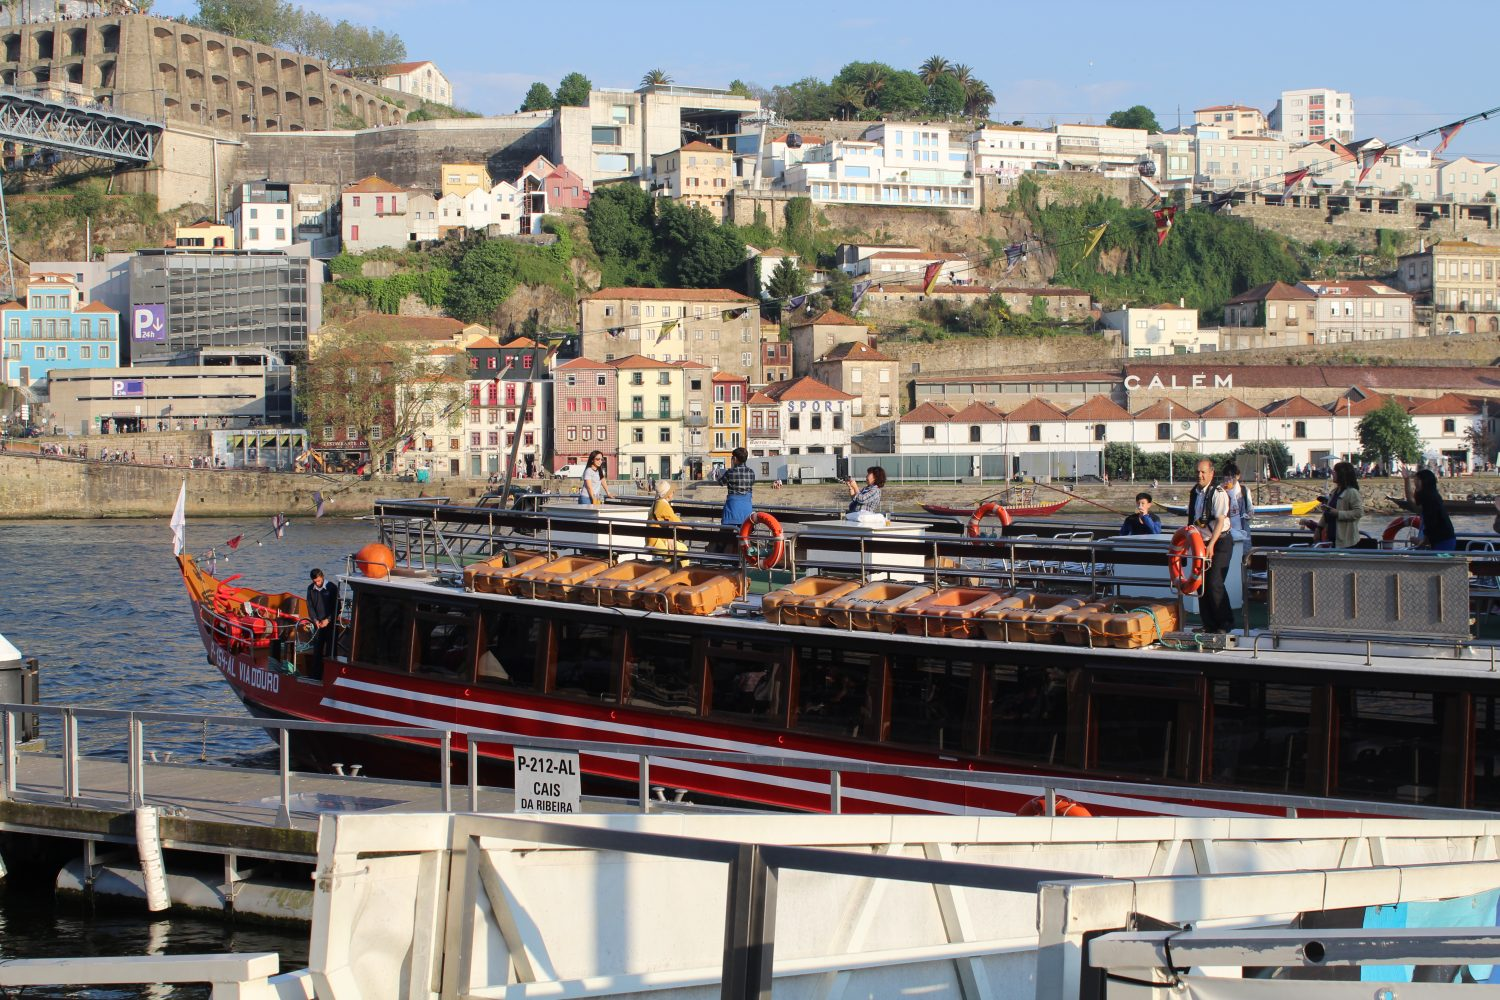 Cruise on the Douro with lunch or dinner on board leaving Ribeira dock